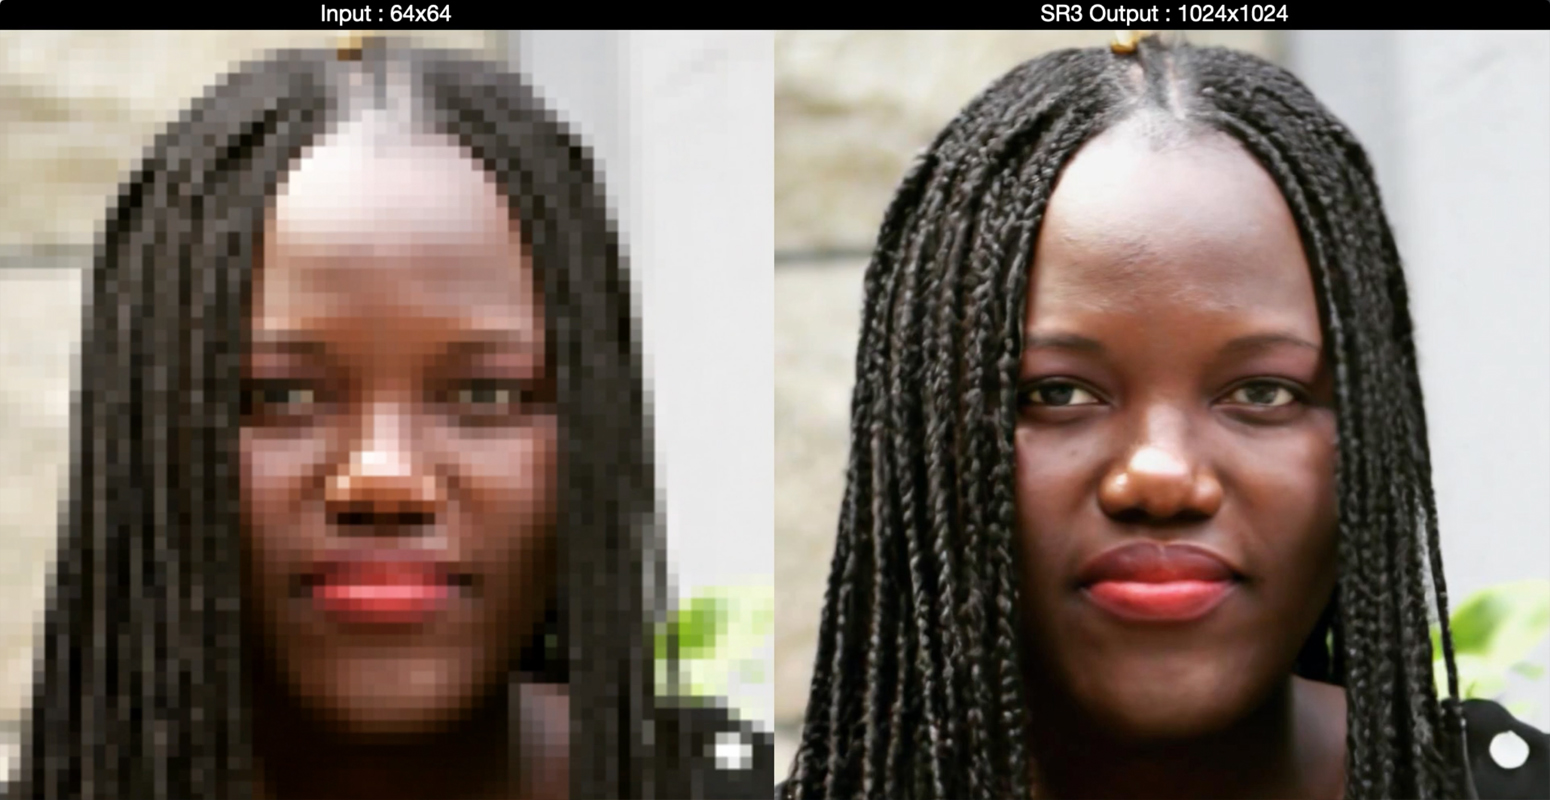 Google AI Turns Low-Res Images To High-Res - Super Resolution SR3 Model (3)